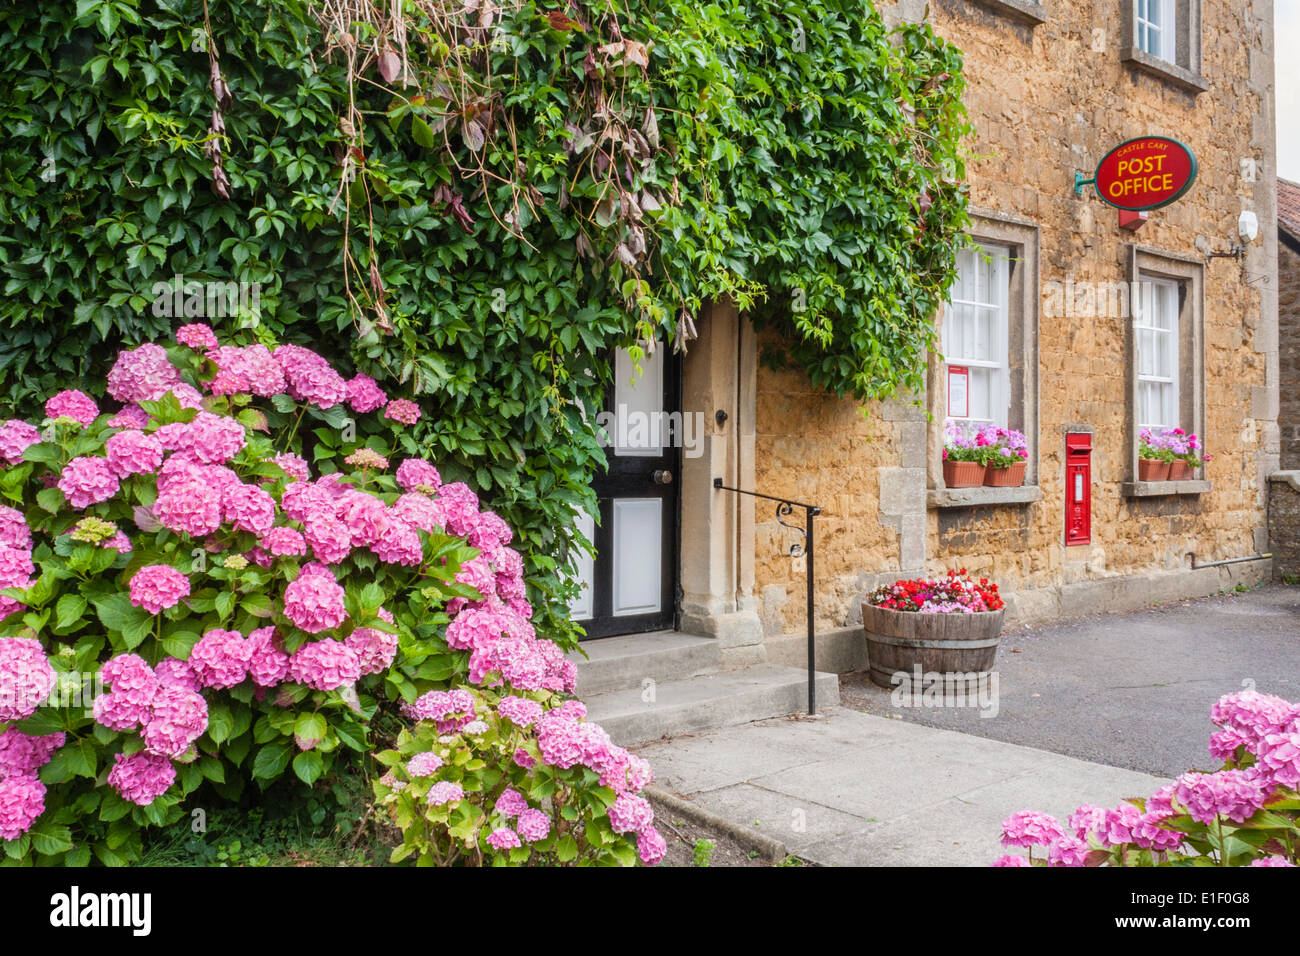 Post Office in the village of Castle Cary, Somerset, England, GB, UK. - Stock Image